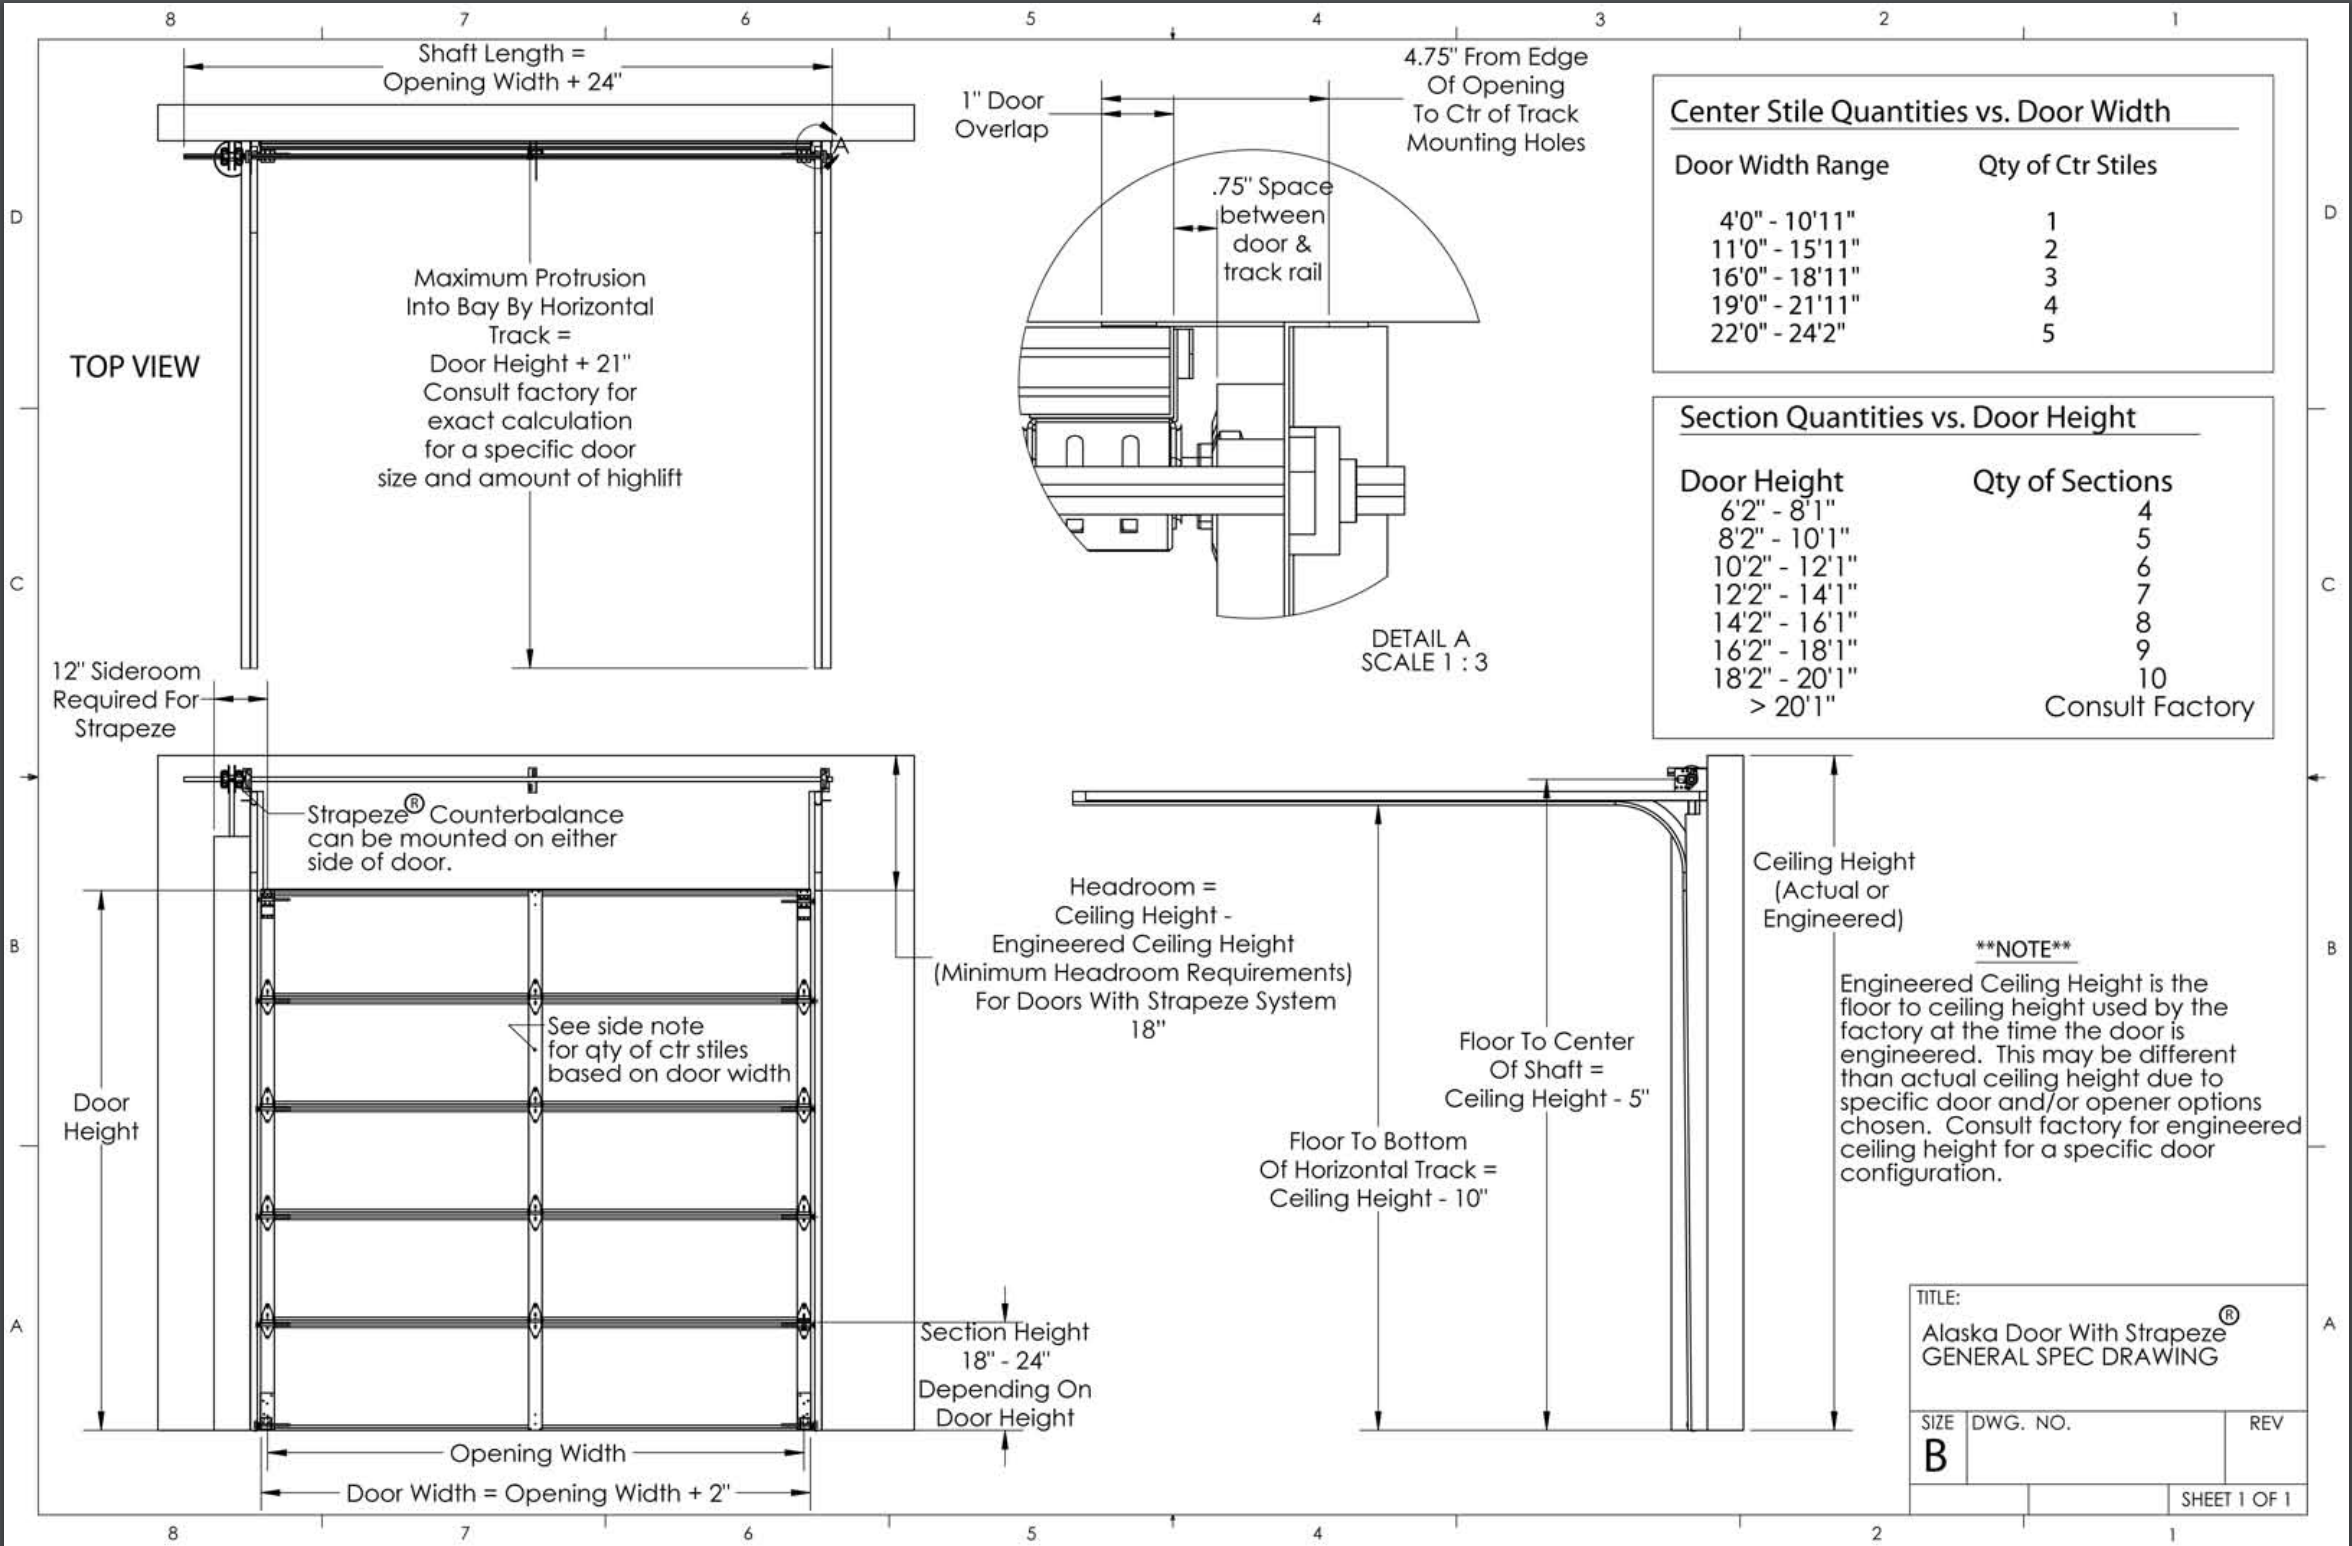 Alaska Strapeze General Shop Drawing